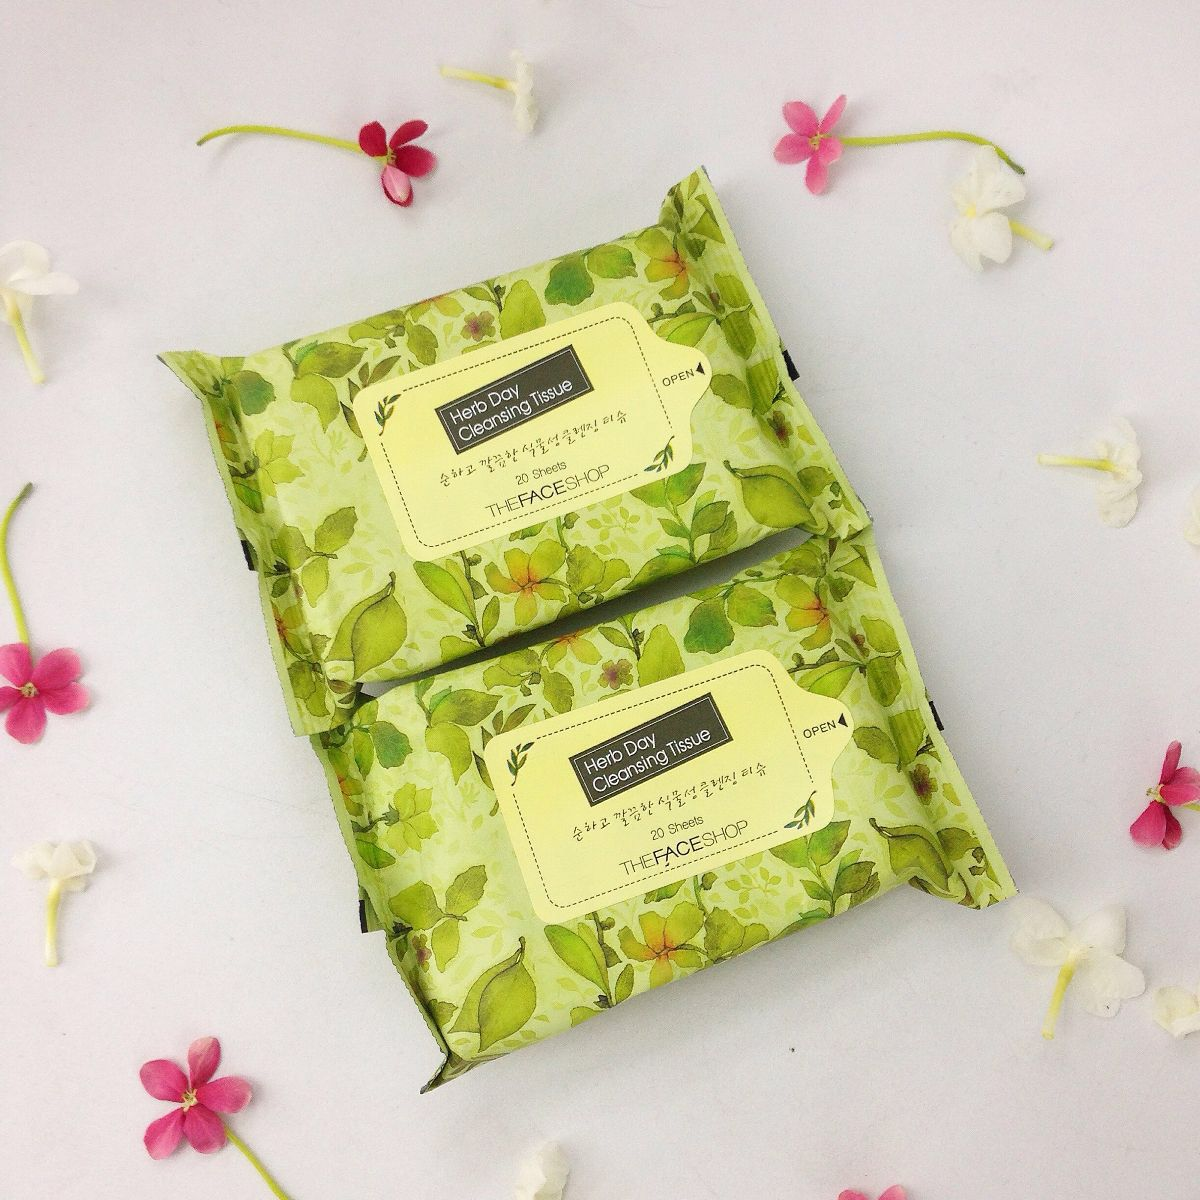 kem-bb-cream-cc-cream-giay-tay-trang-the-face-shop-herb-day-cleansing-tissue-1106